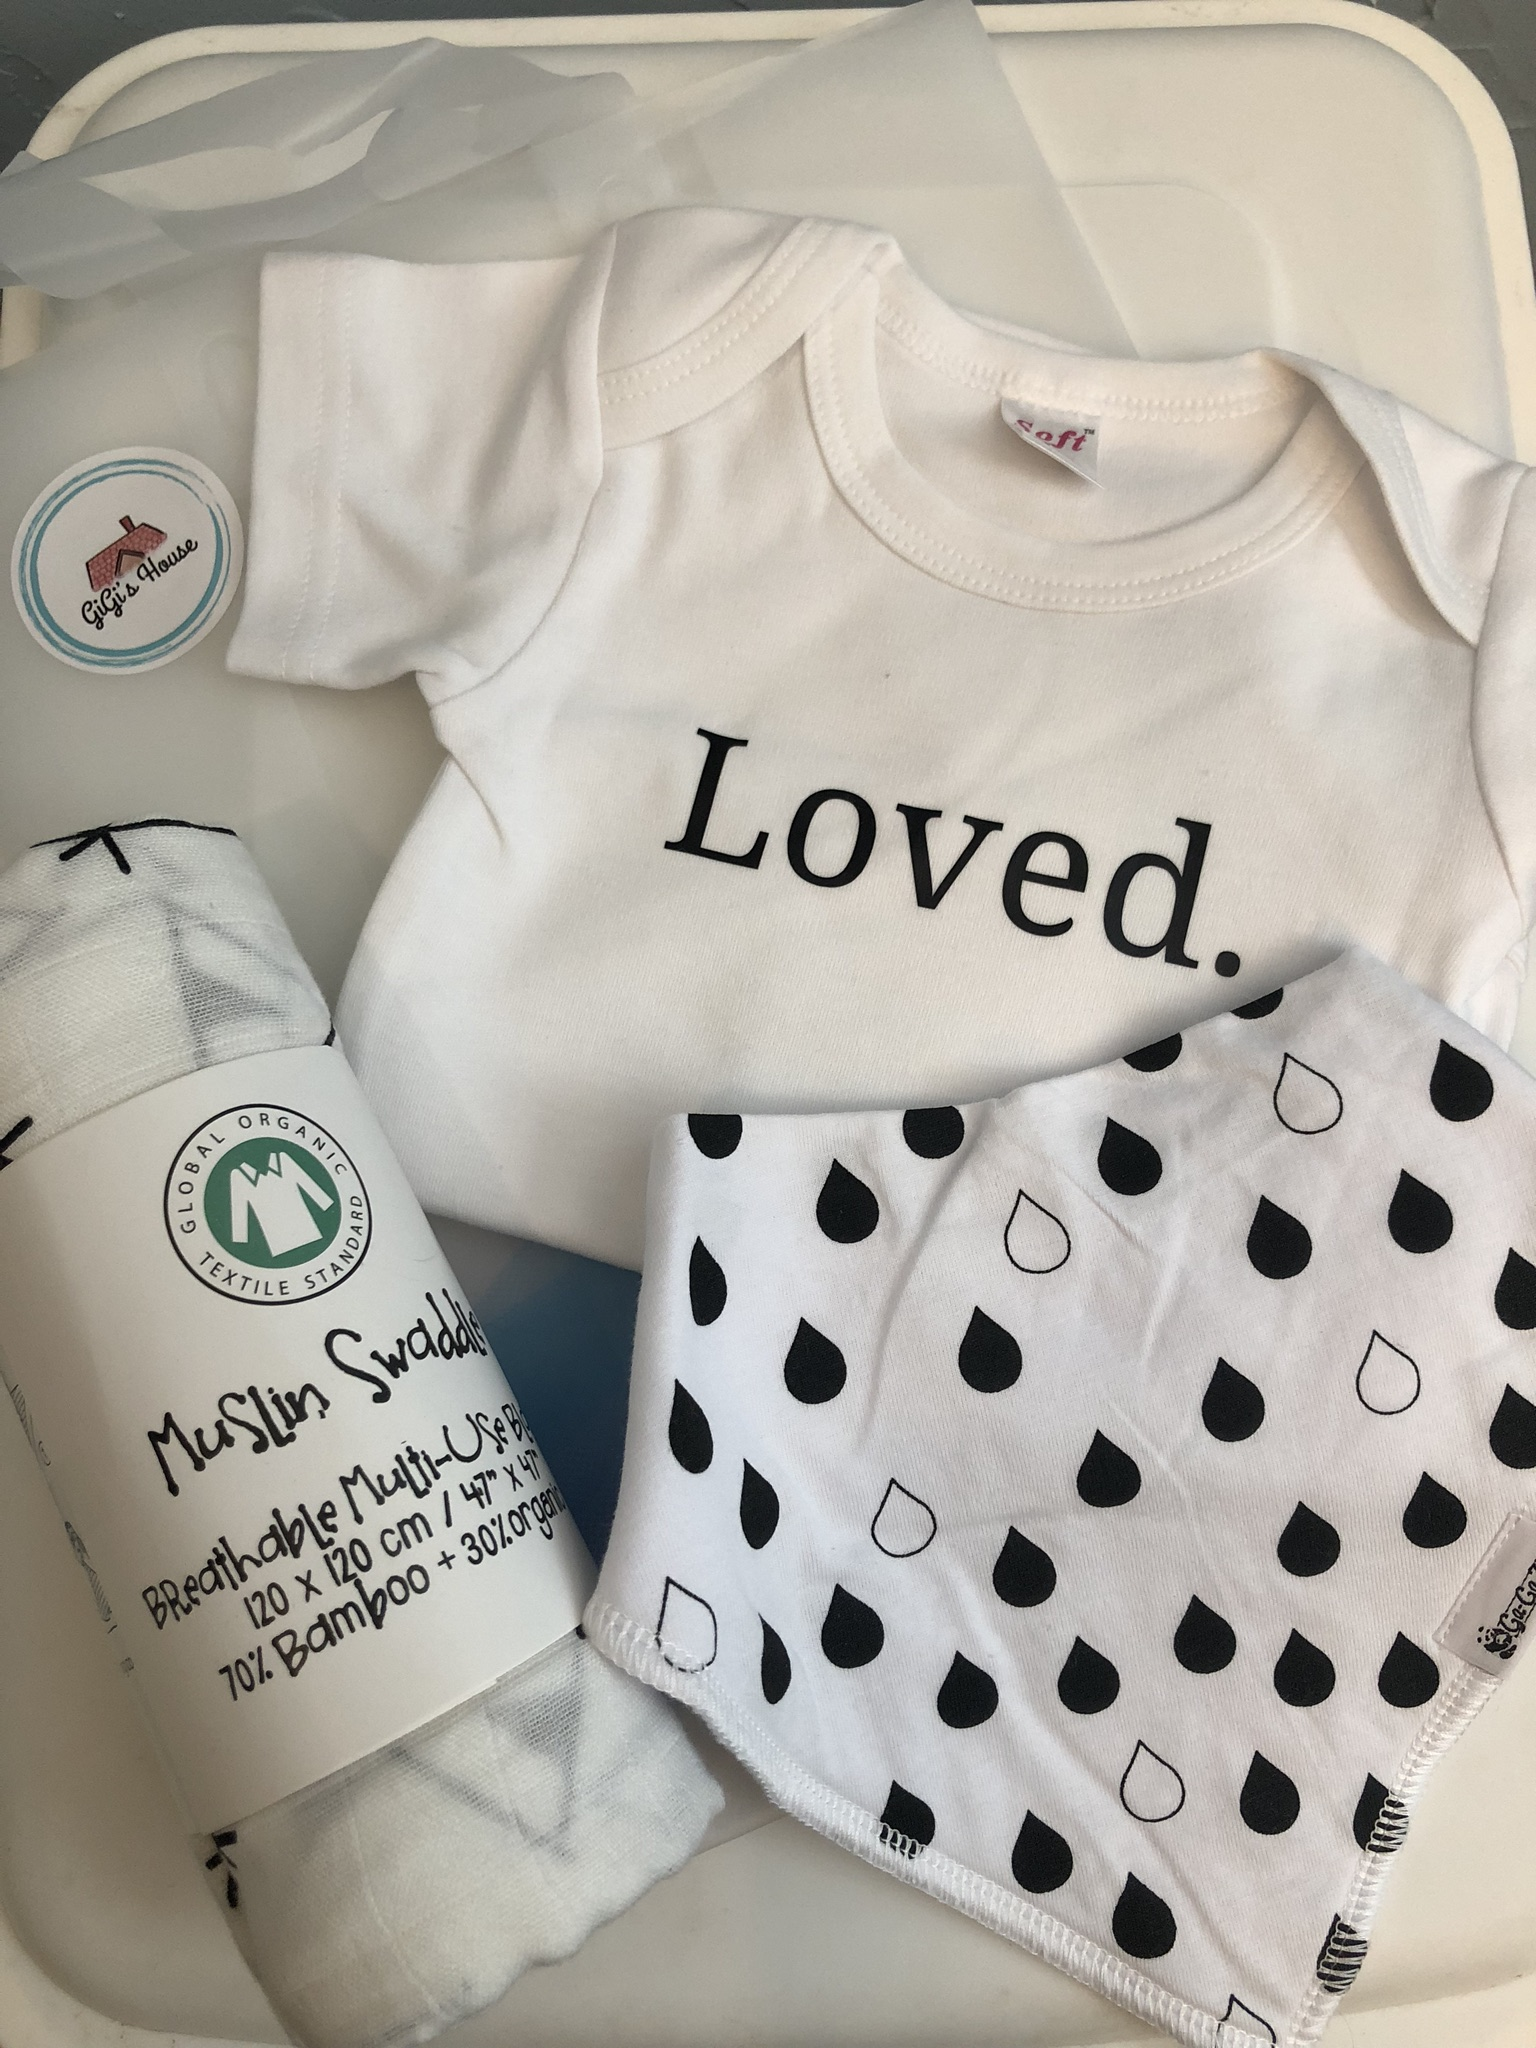 Stress-free baby gift giving from Gigi's House.